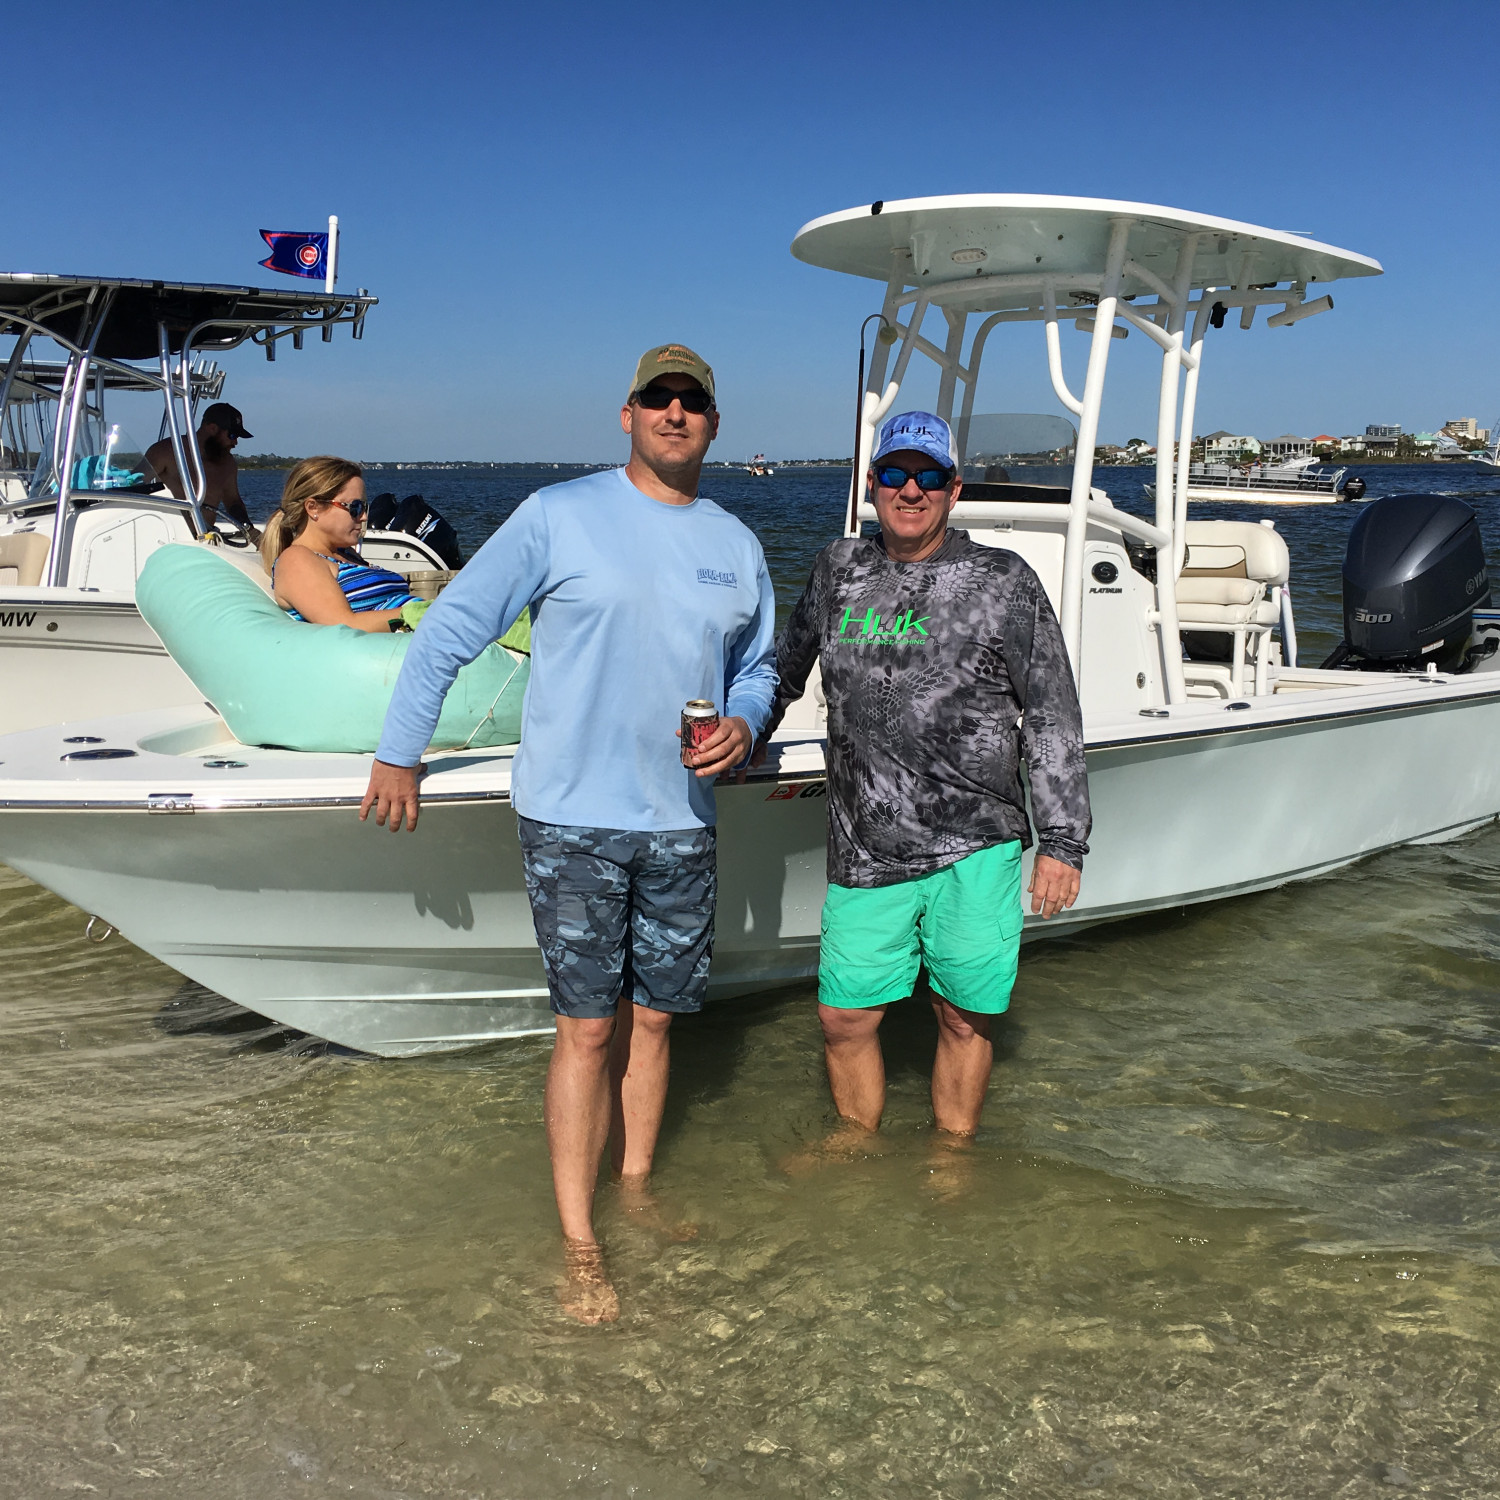 Title: 247 Admins - On board their Sportsman Masters 247 Bay Boat - Location: Orange Beach AL. Participating in the Photo Contest #SportsmanApril2018